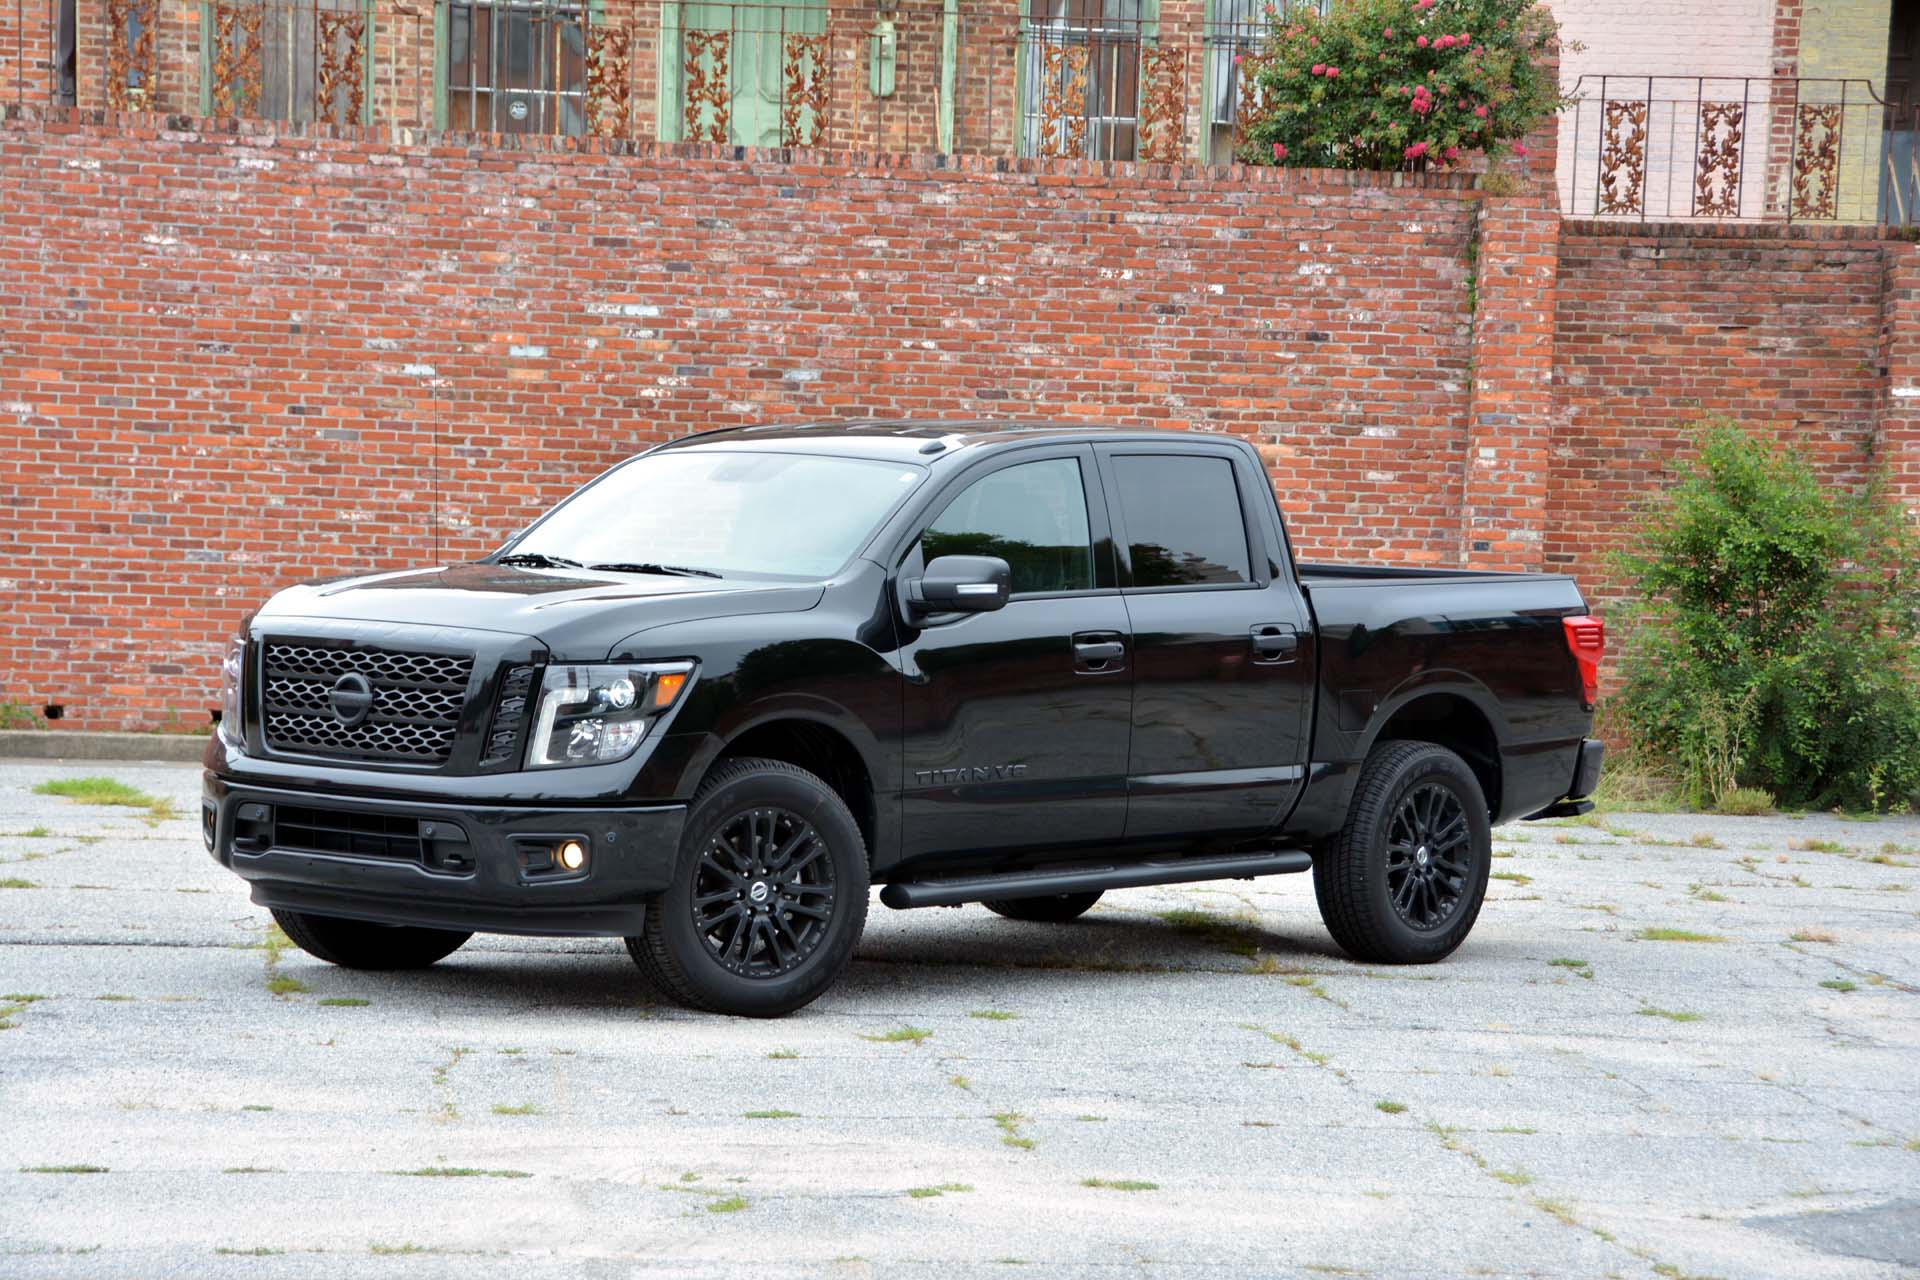 Back In Black 2018 Nissan Titan Midnight Edition Test Drive Review Autonation Drive